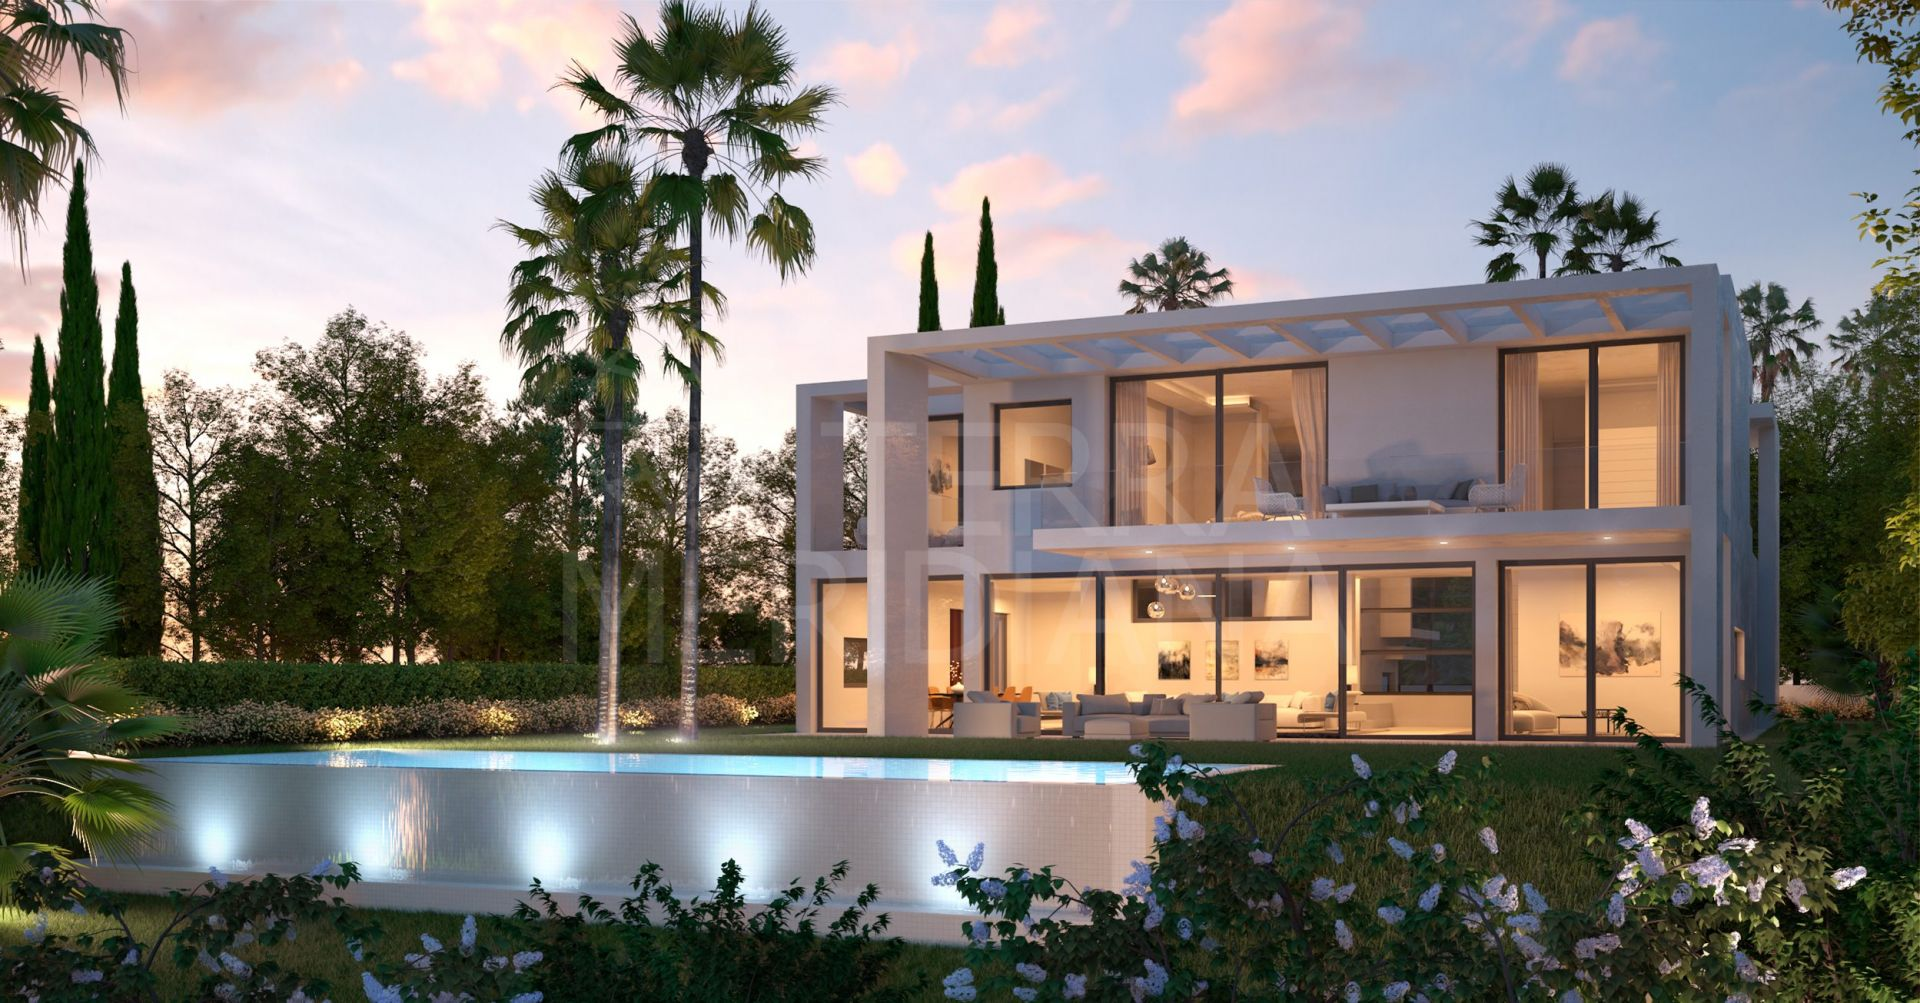 ICON Marbella , Marbella East - New 5 bedroom modern villas in gated community with 24 hour security in Santa Clara, Marbella East